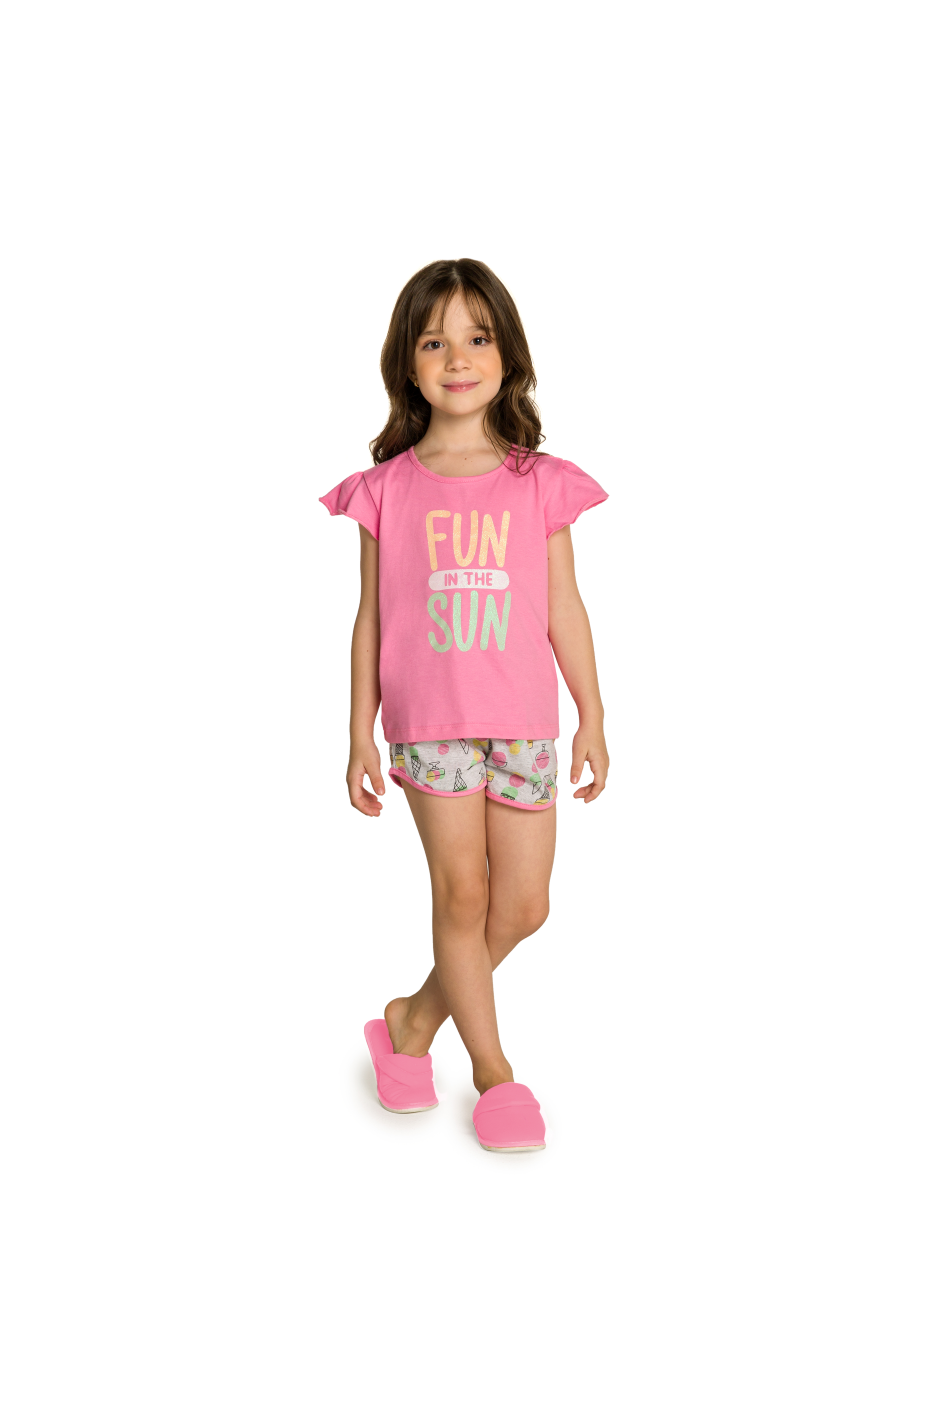 000/D - Pijama Infantil Feminino Fun In The Sun